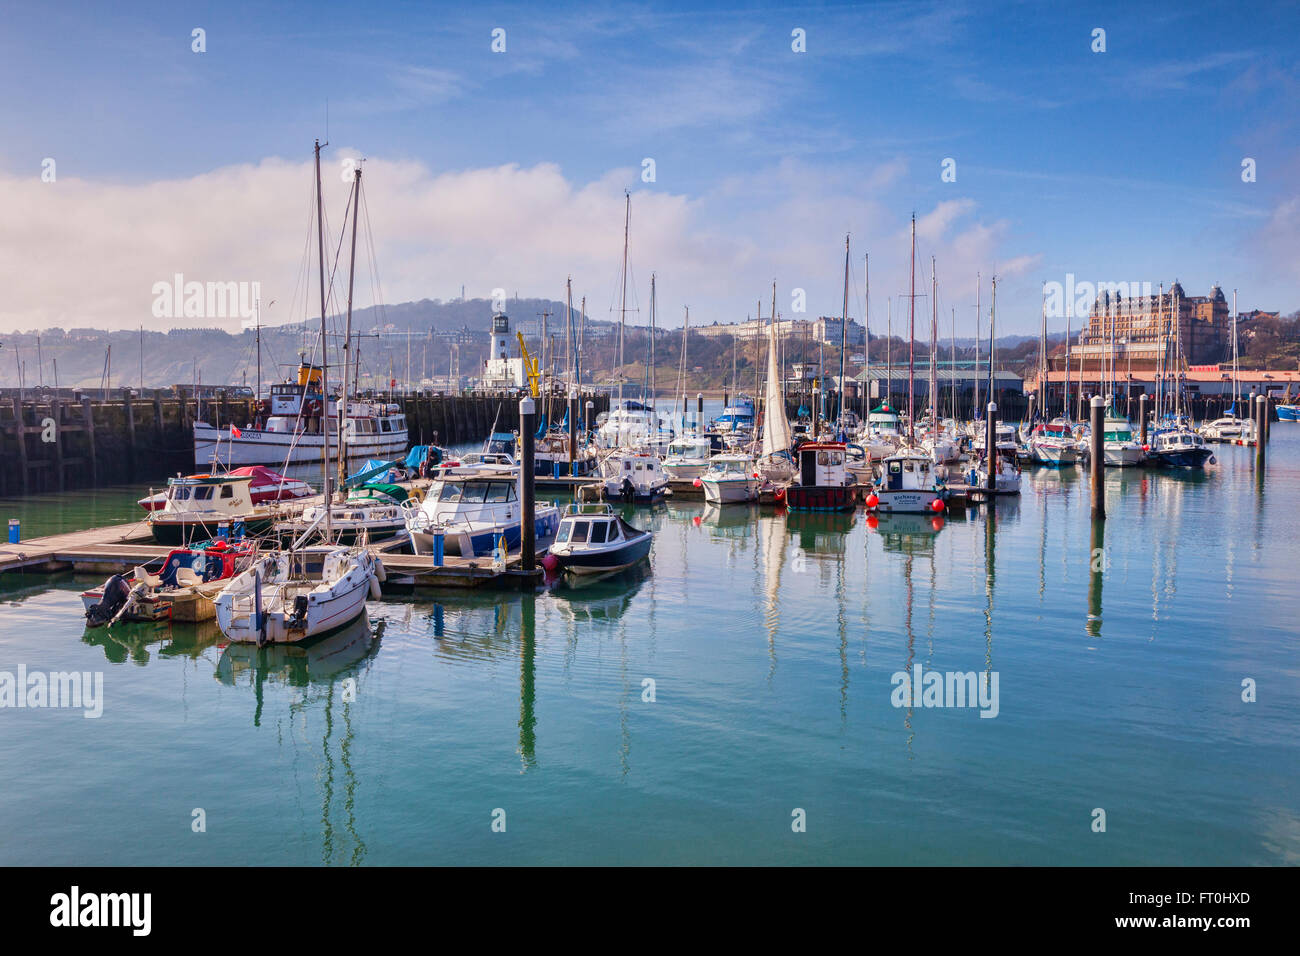 Scarborough Harbour, with the Grand Hotel and Oliver's Mount in the distance,  North Yorkshire, England, UK - Stock Image